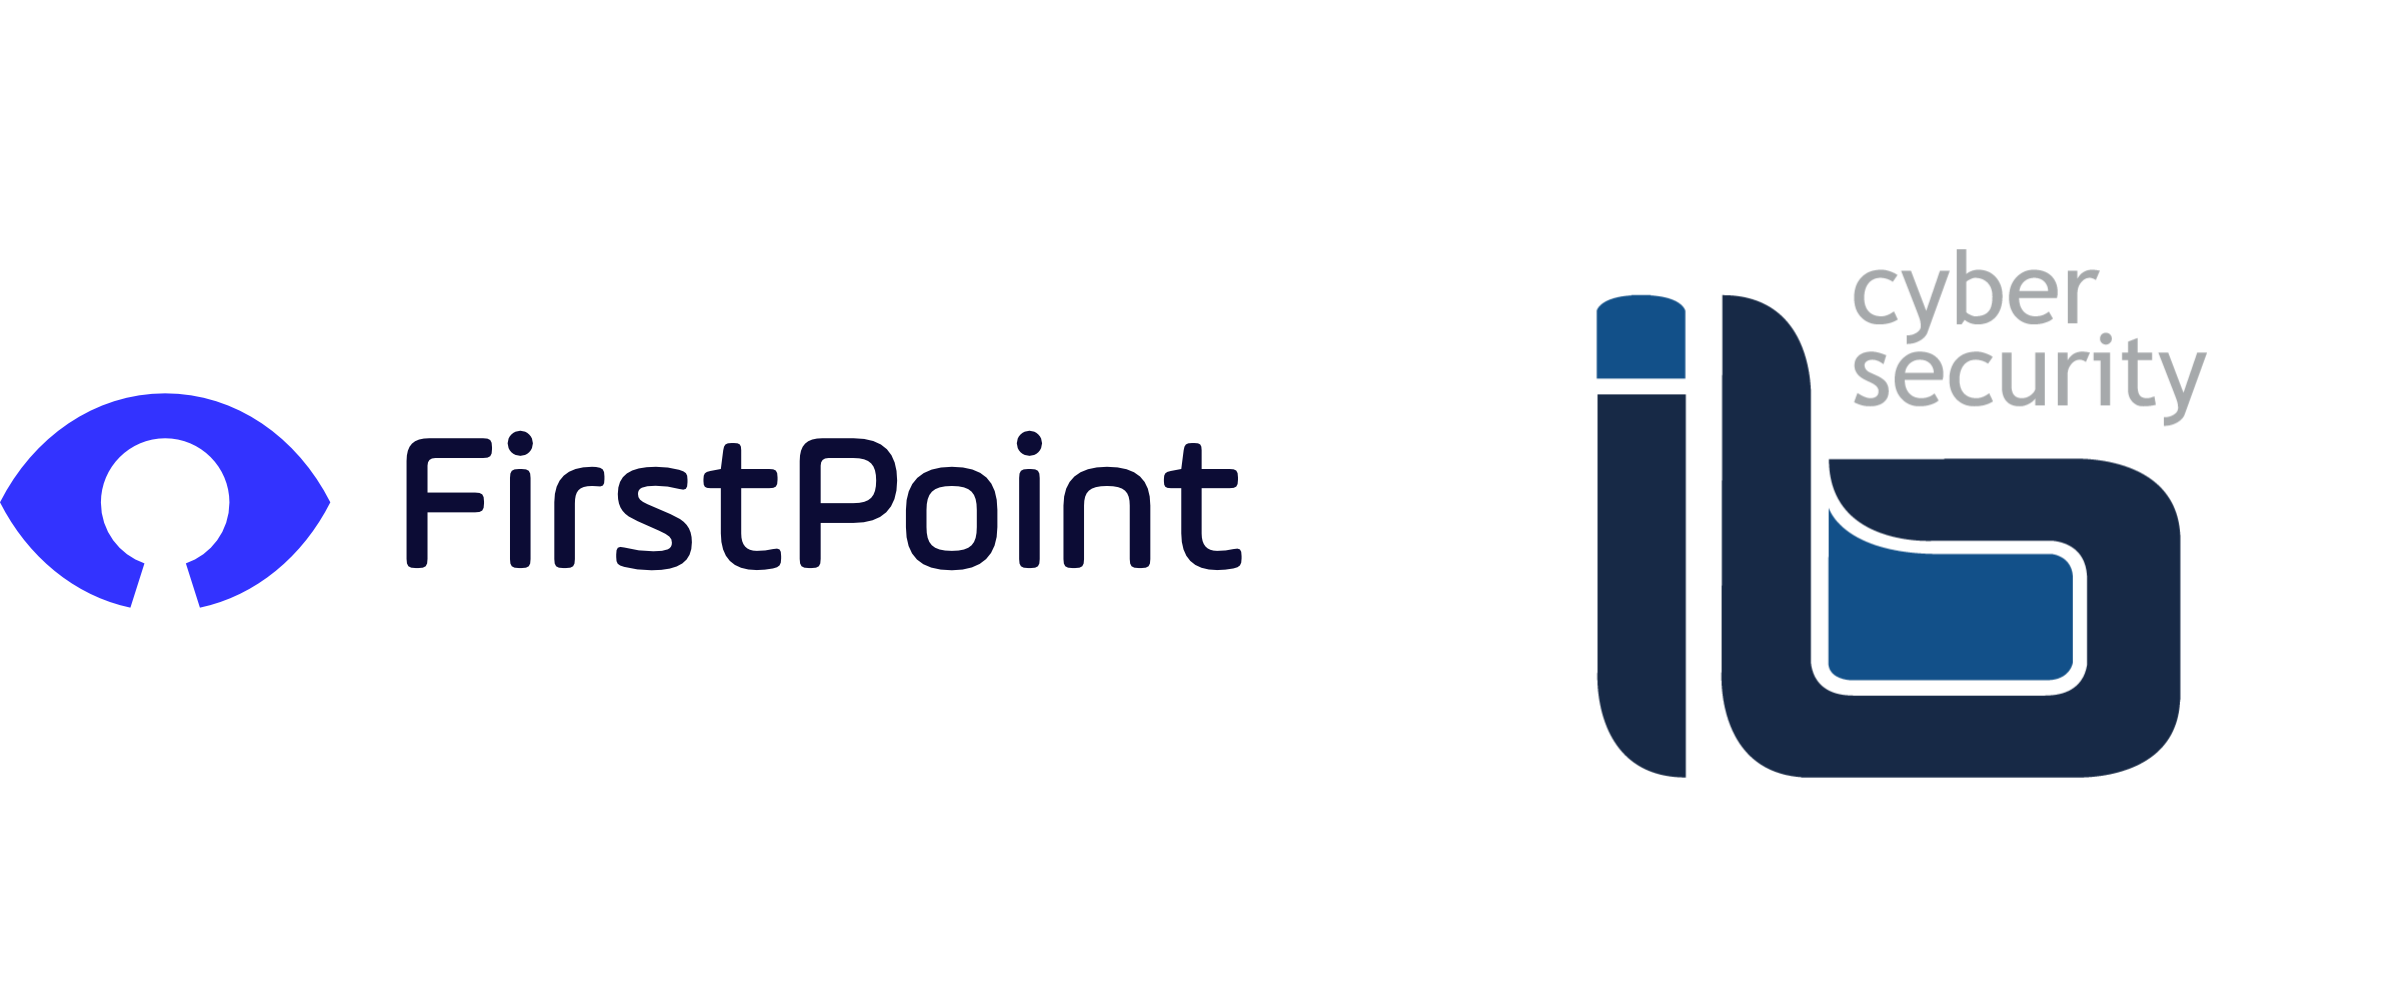 FirstPoint e IB Cyber Security